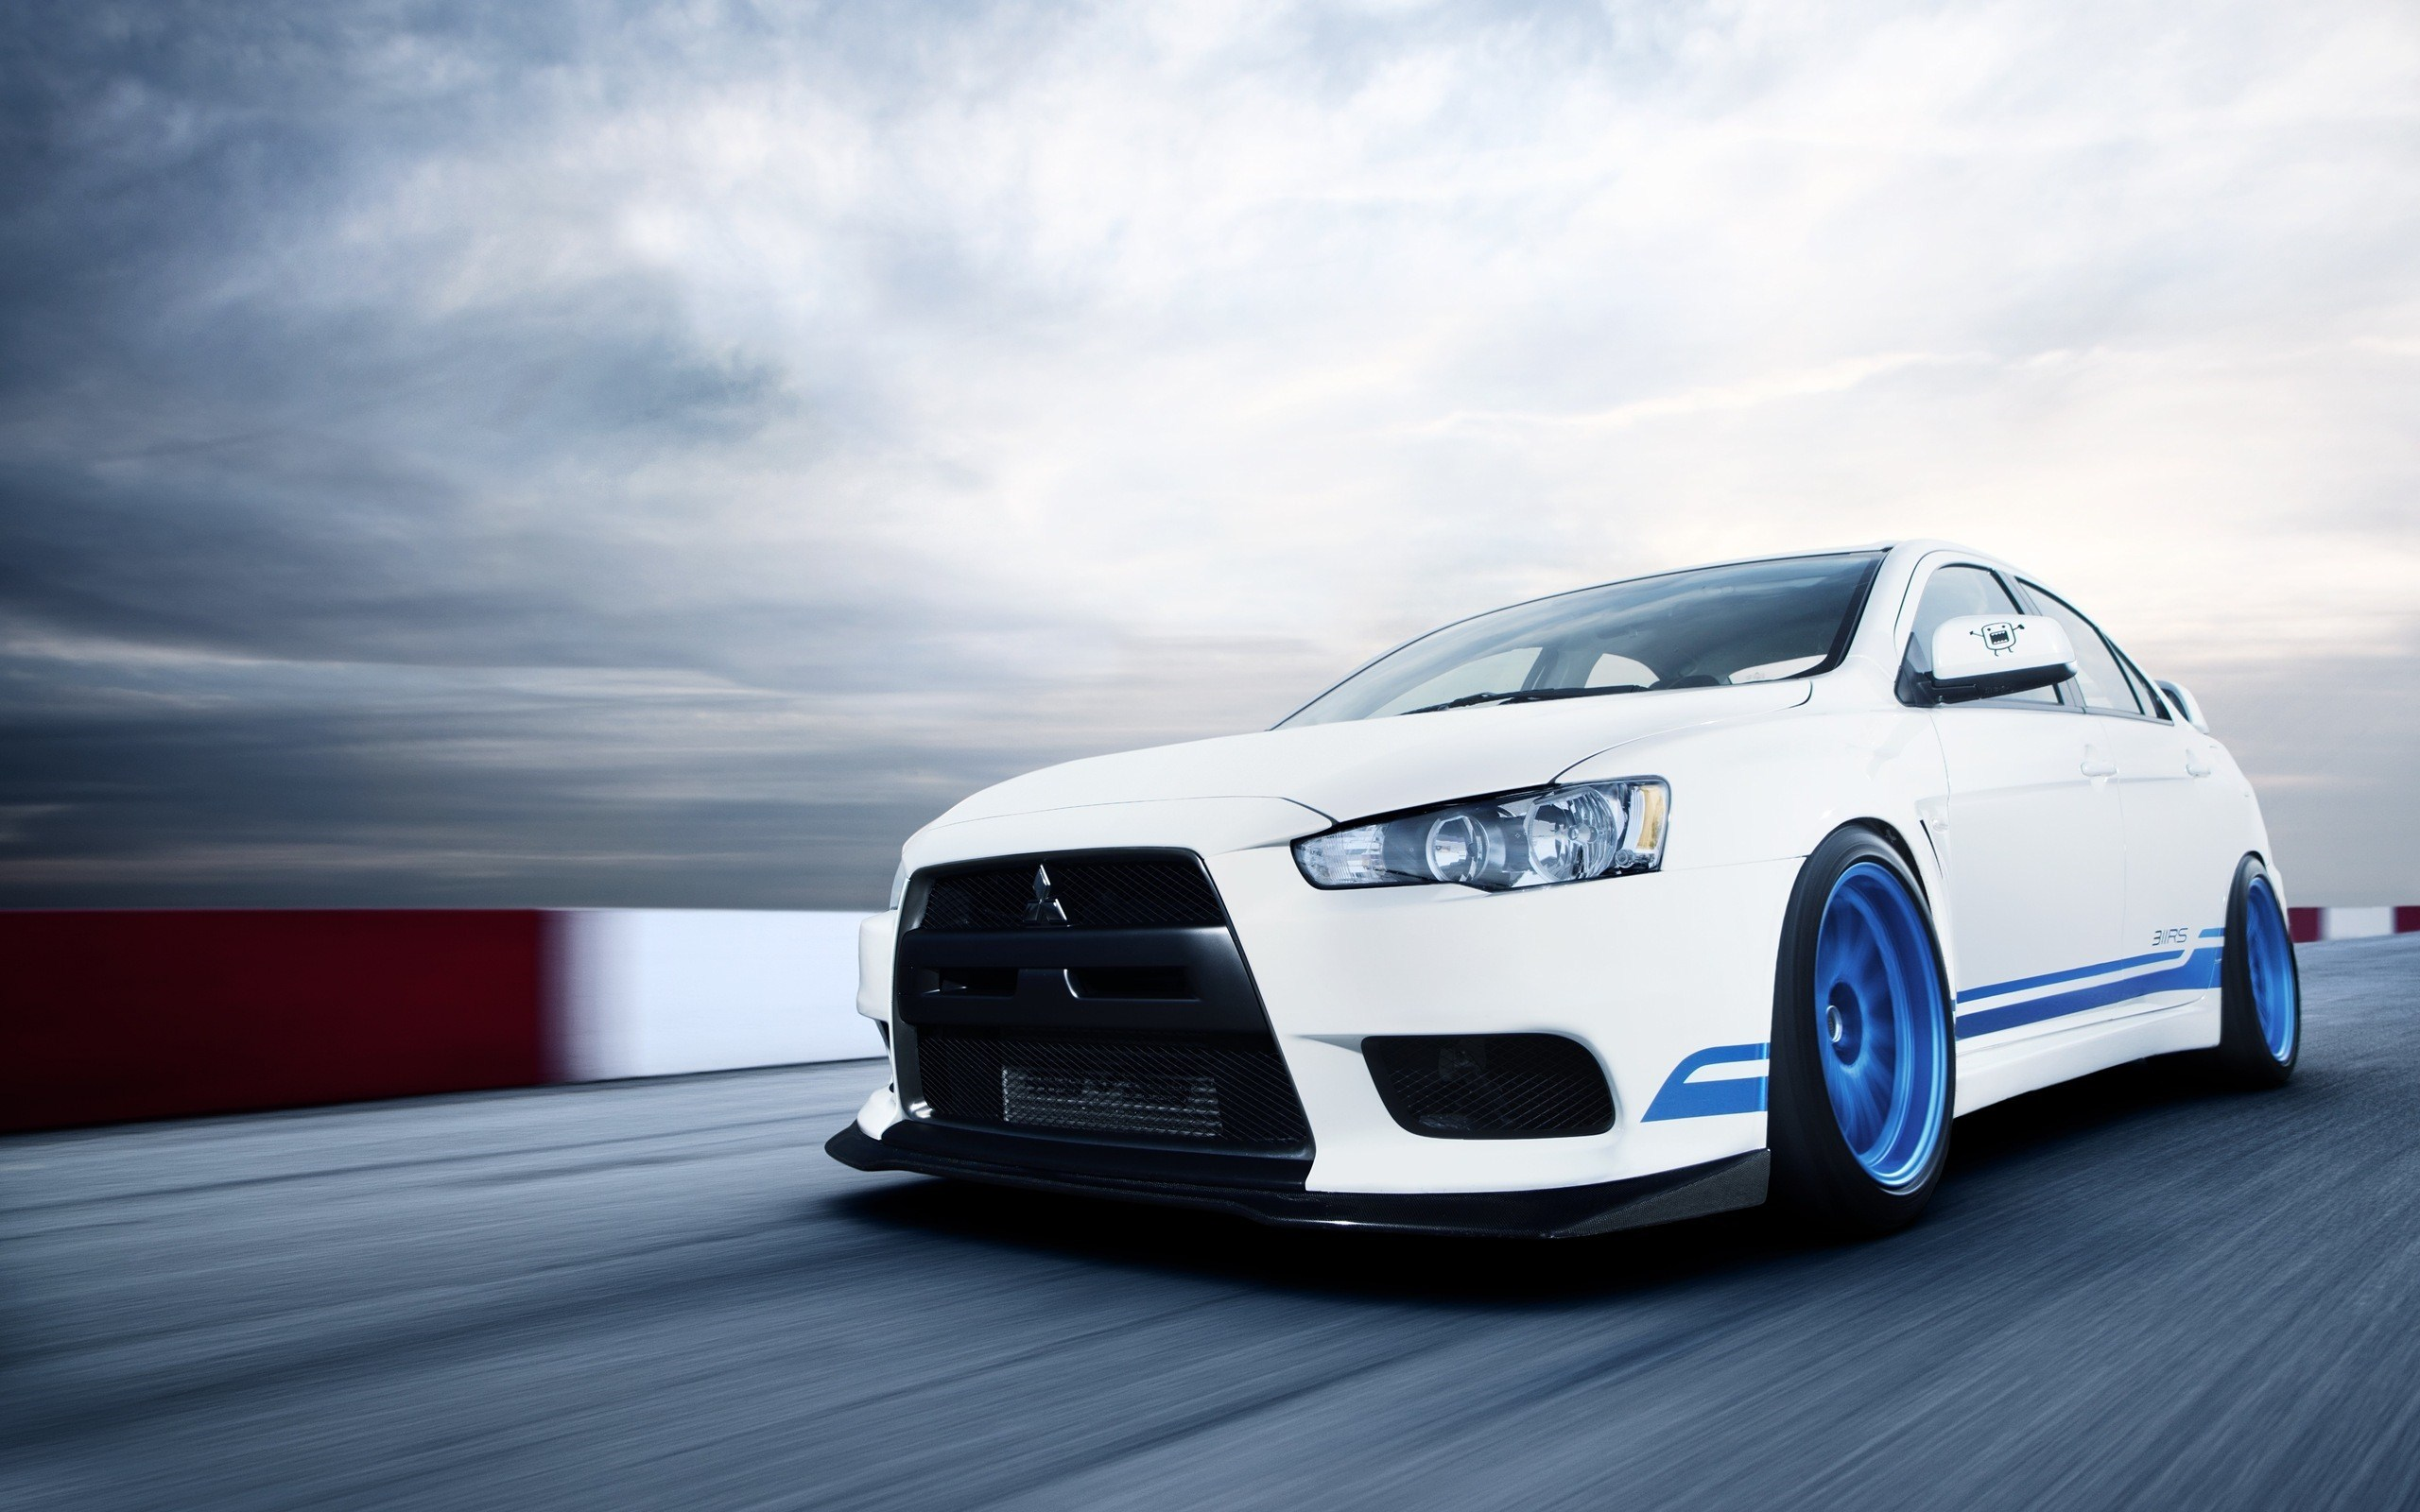 awesome track car wallpaper 40877